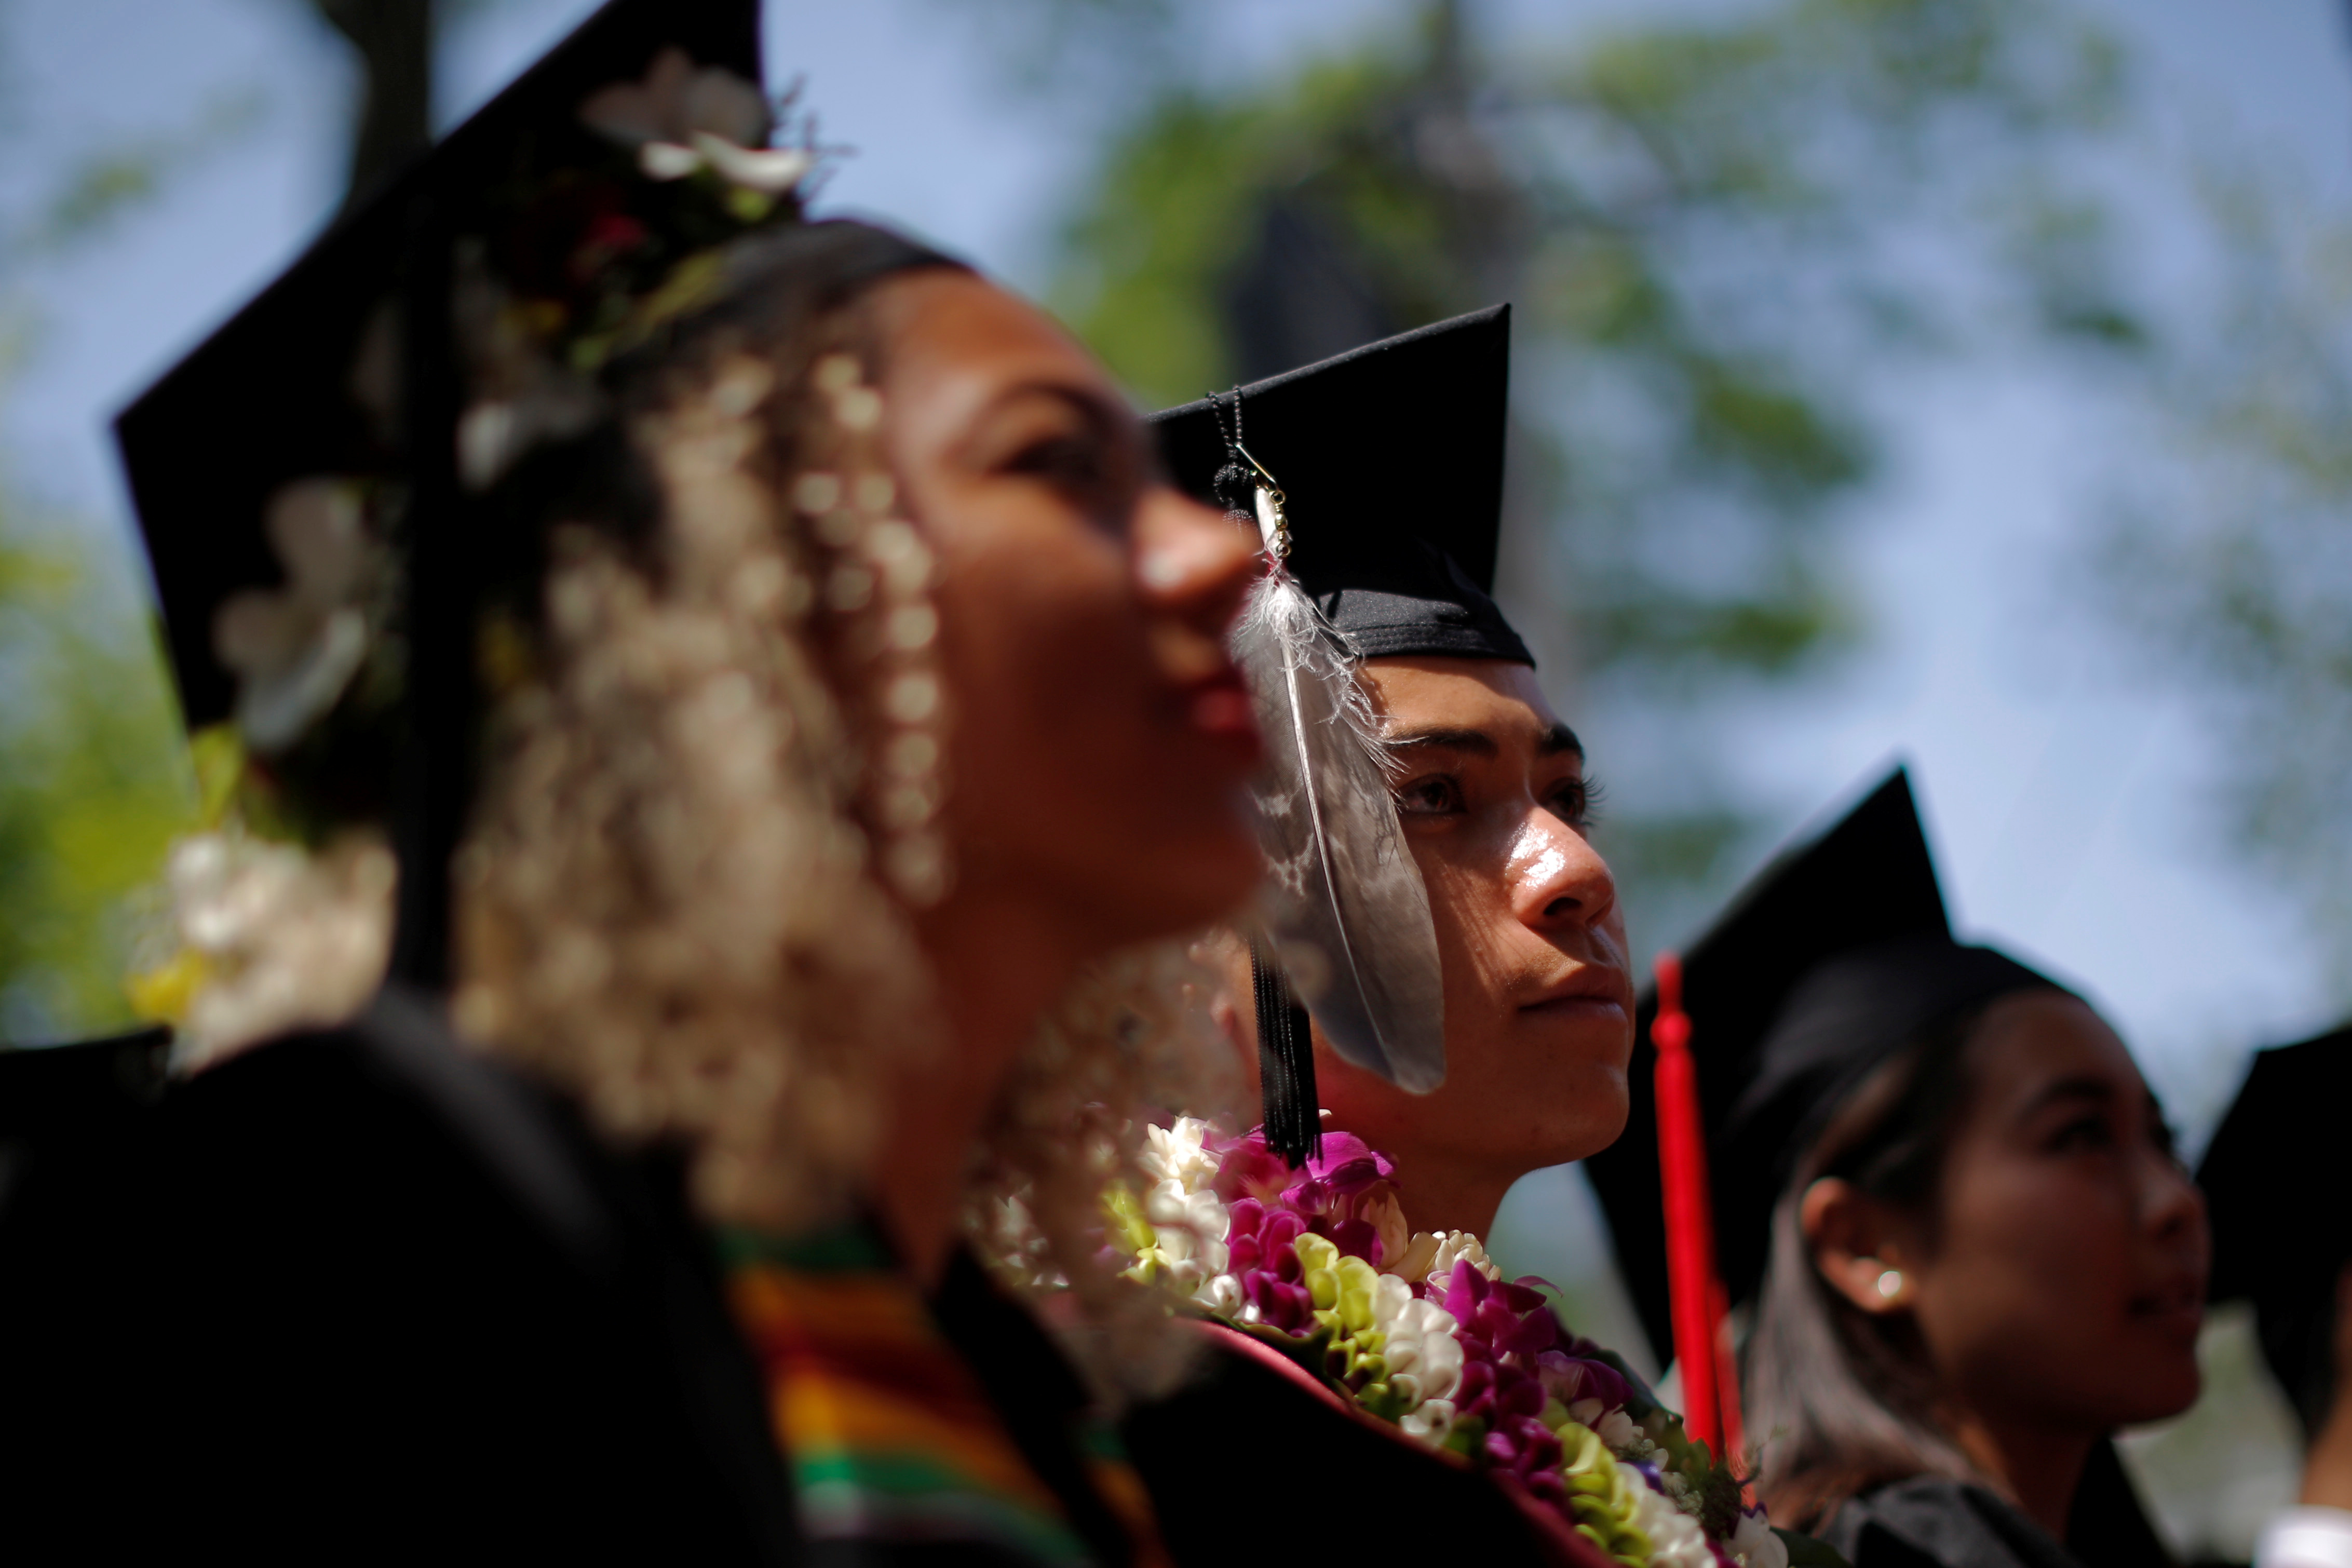 Black-white disparity in student loan debt more than triples